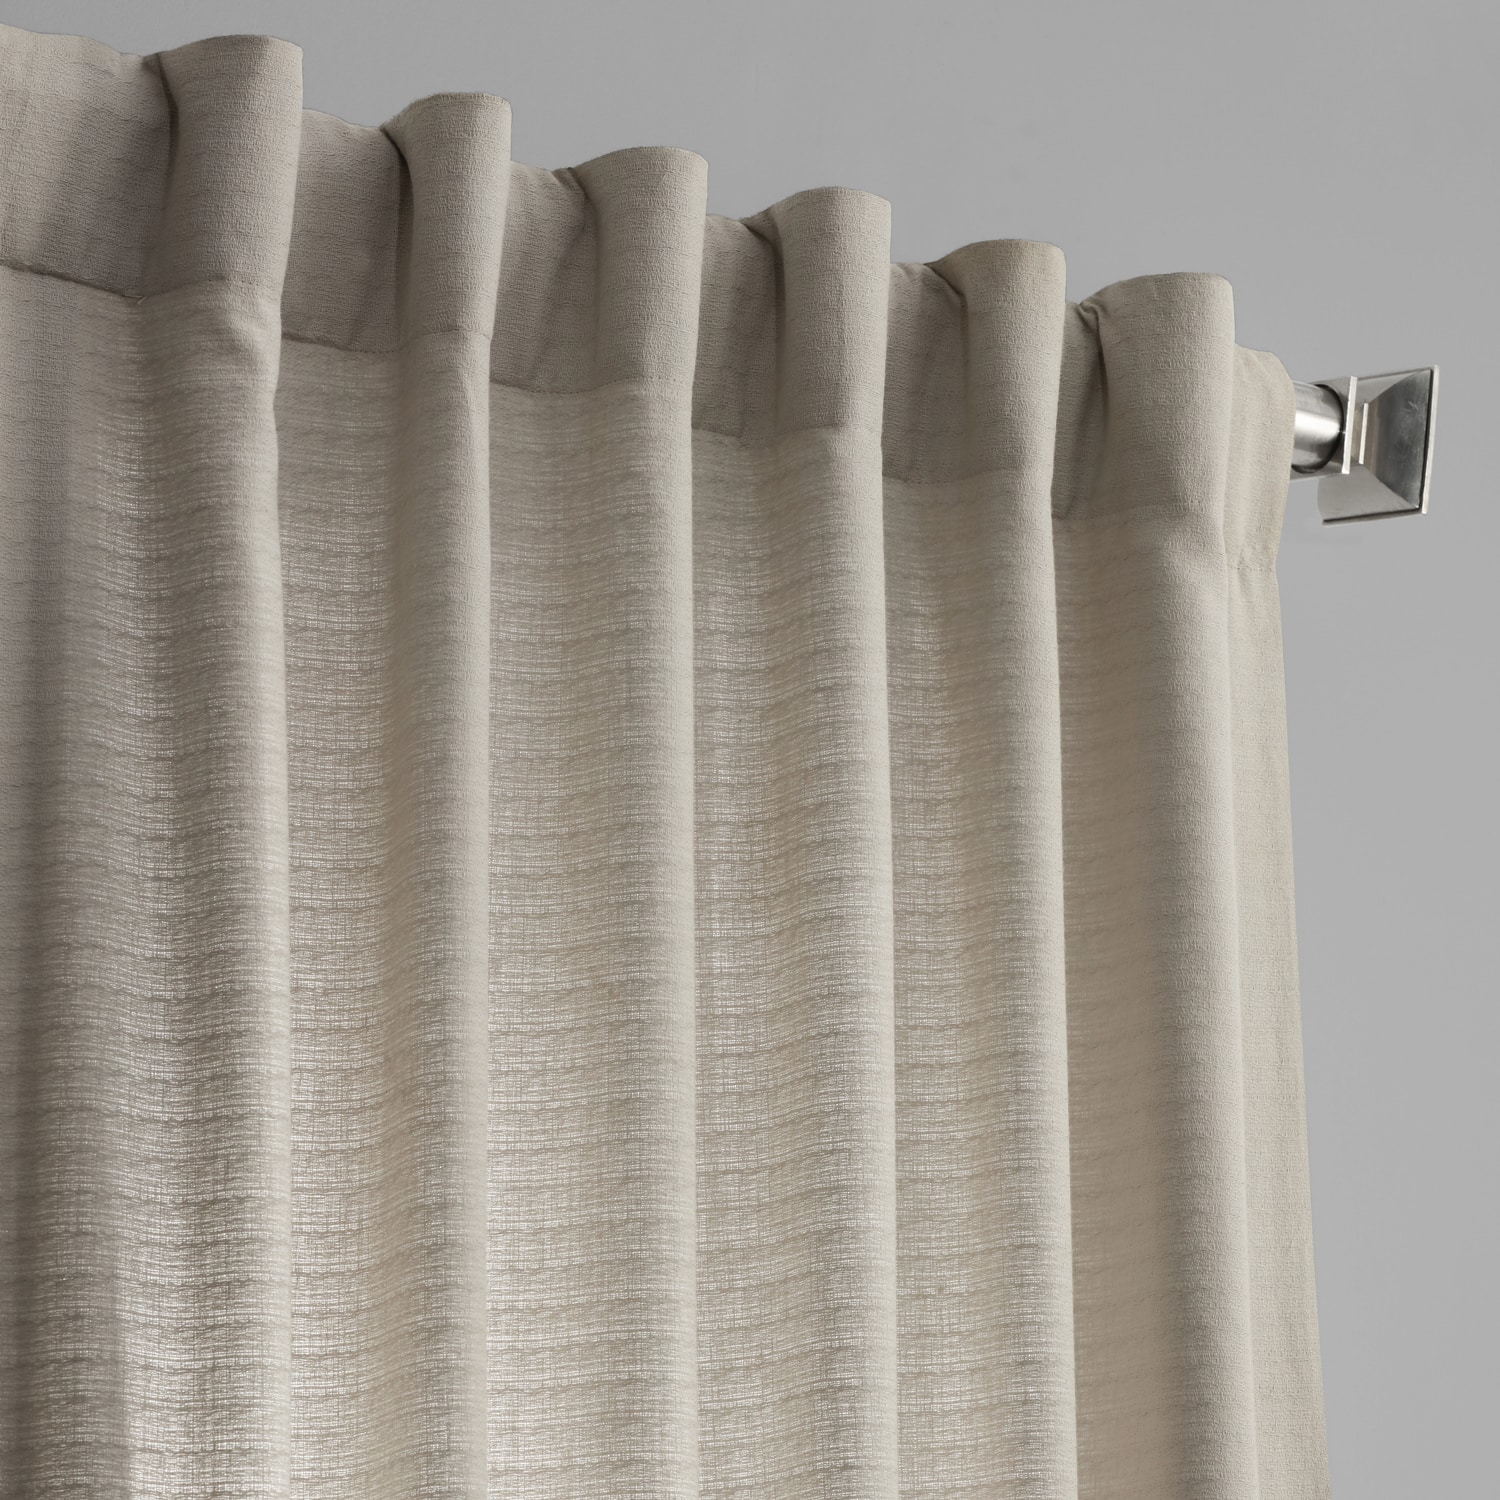 Fog Grey Cotton Textured BarkWeave Curtain